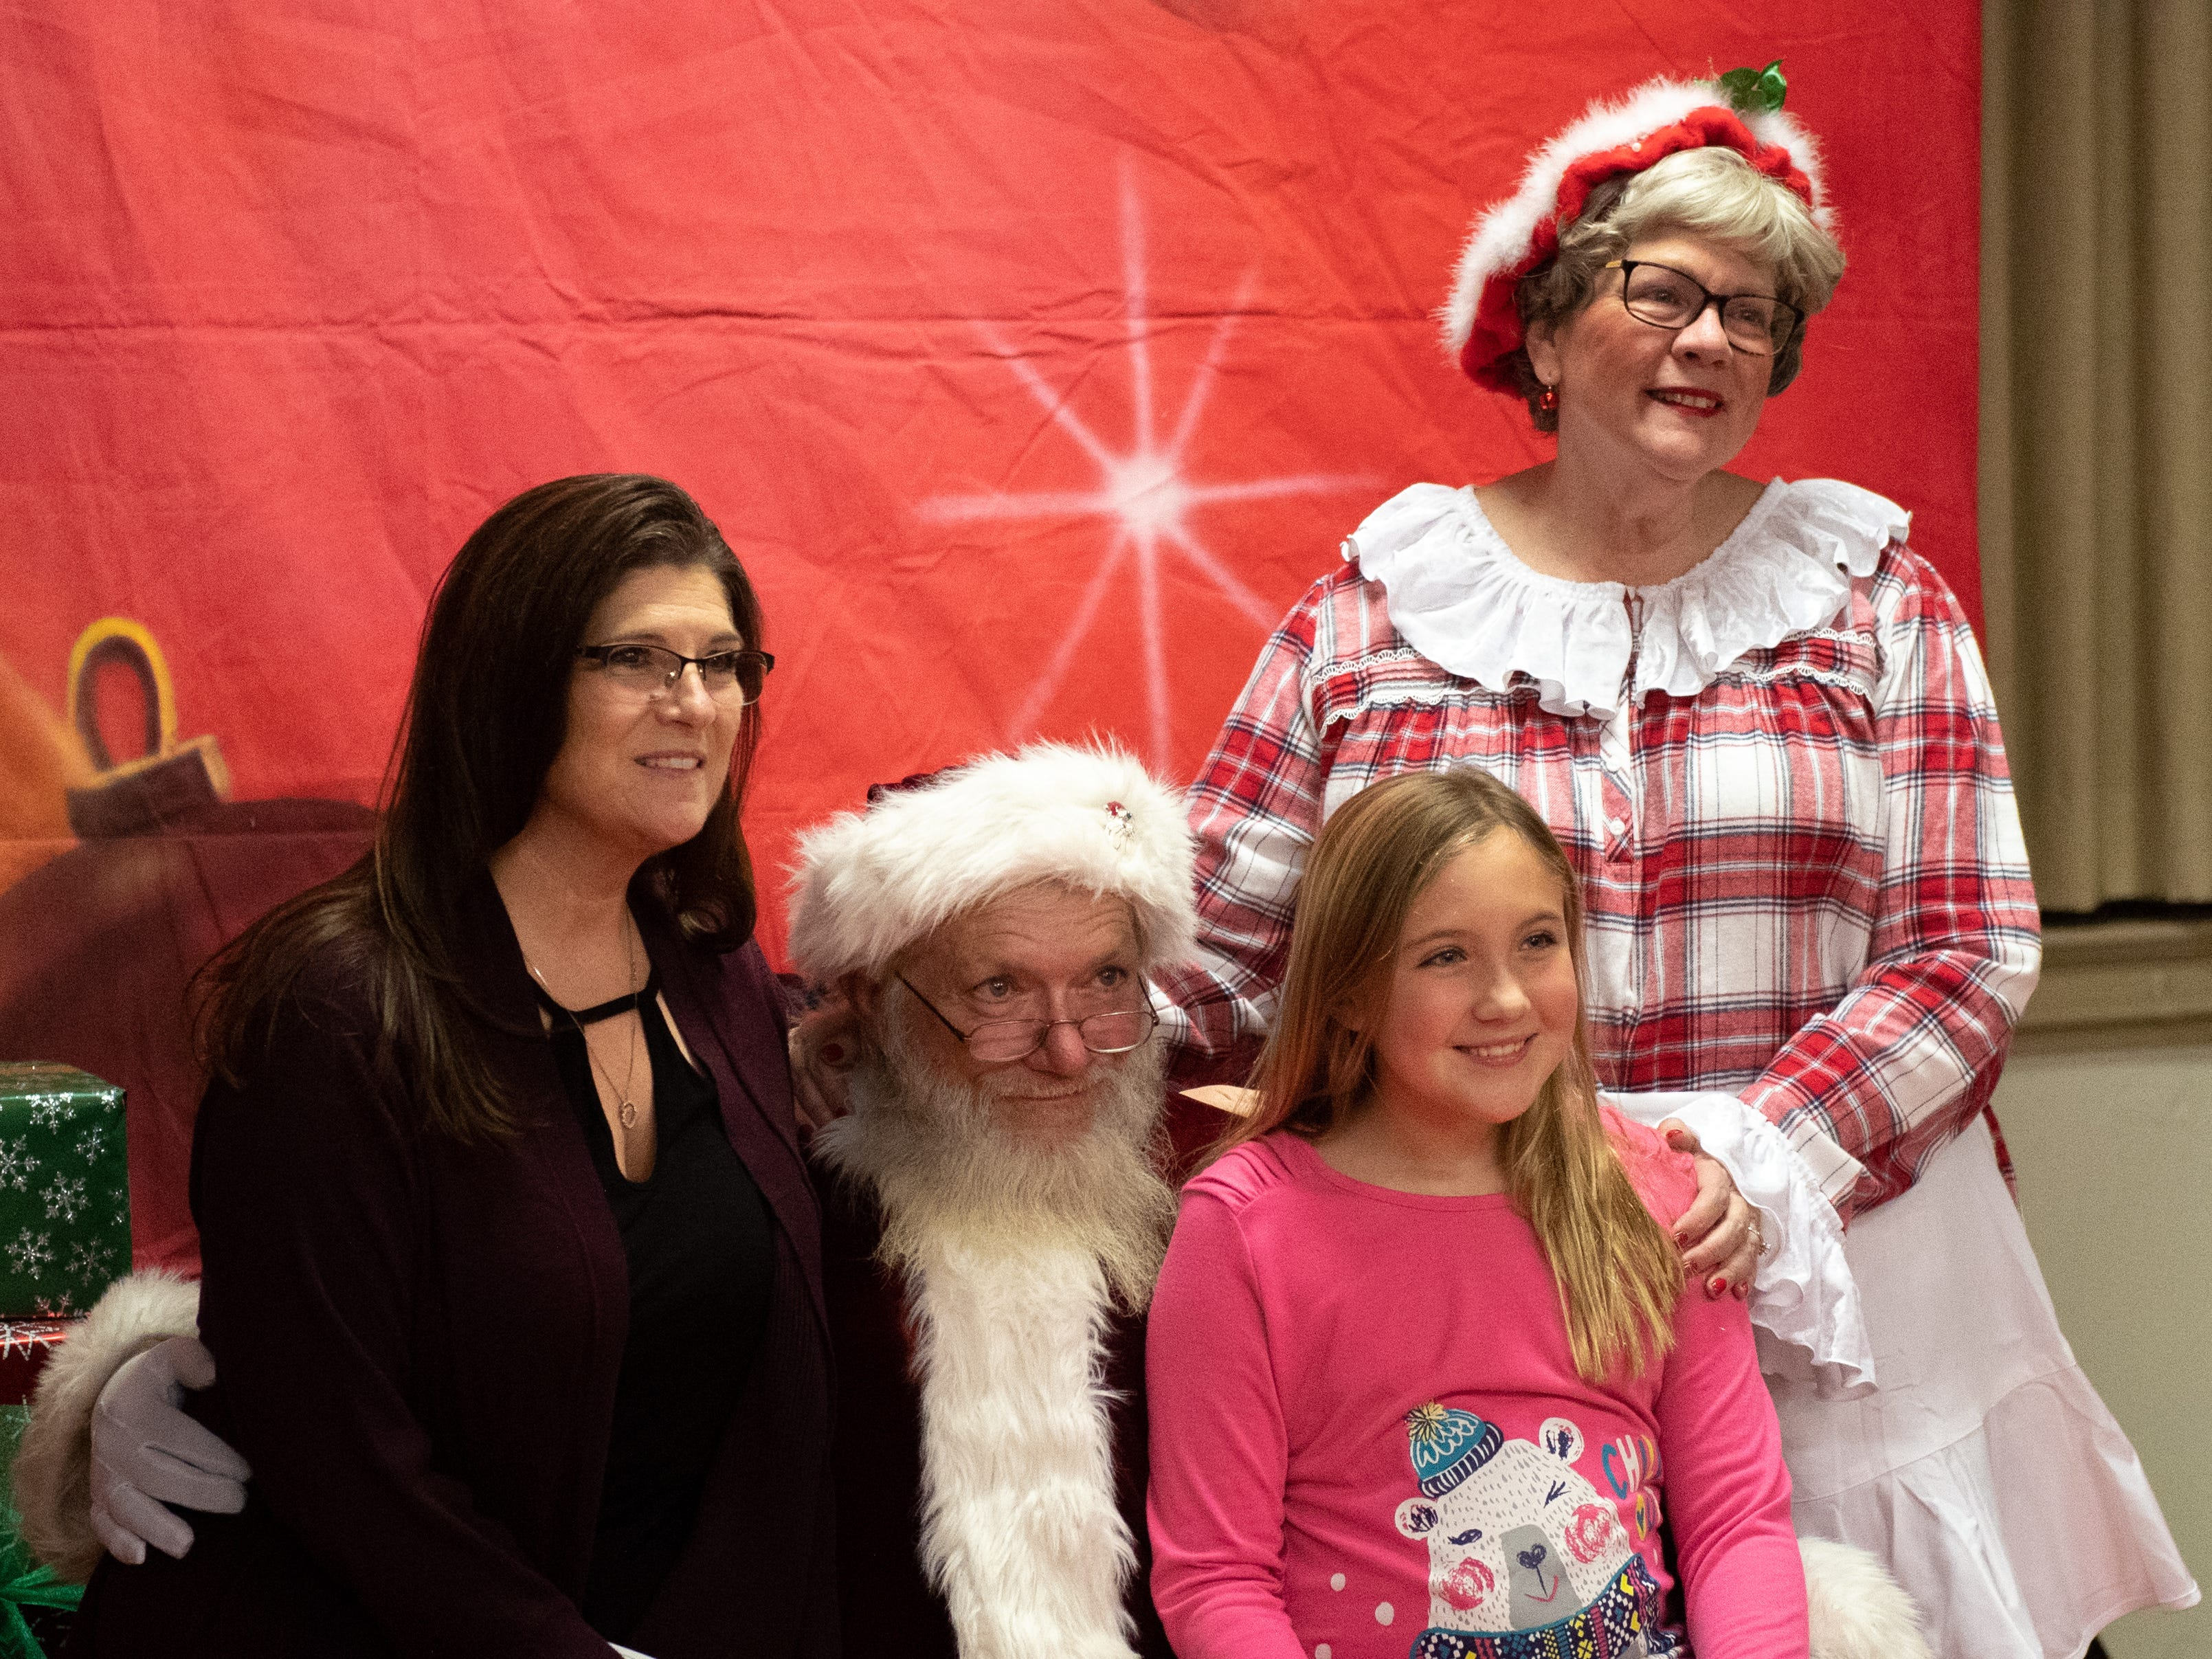 Nancy Fuentes (left) and her daughter, Rio (right), pose with Santa and Mrs. Claus during the Annual Evening with Santa at the Lincoln Engine Company, December 13, 2018.